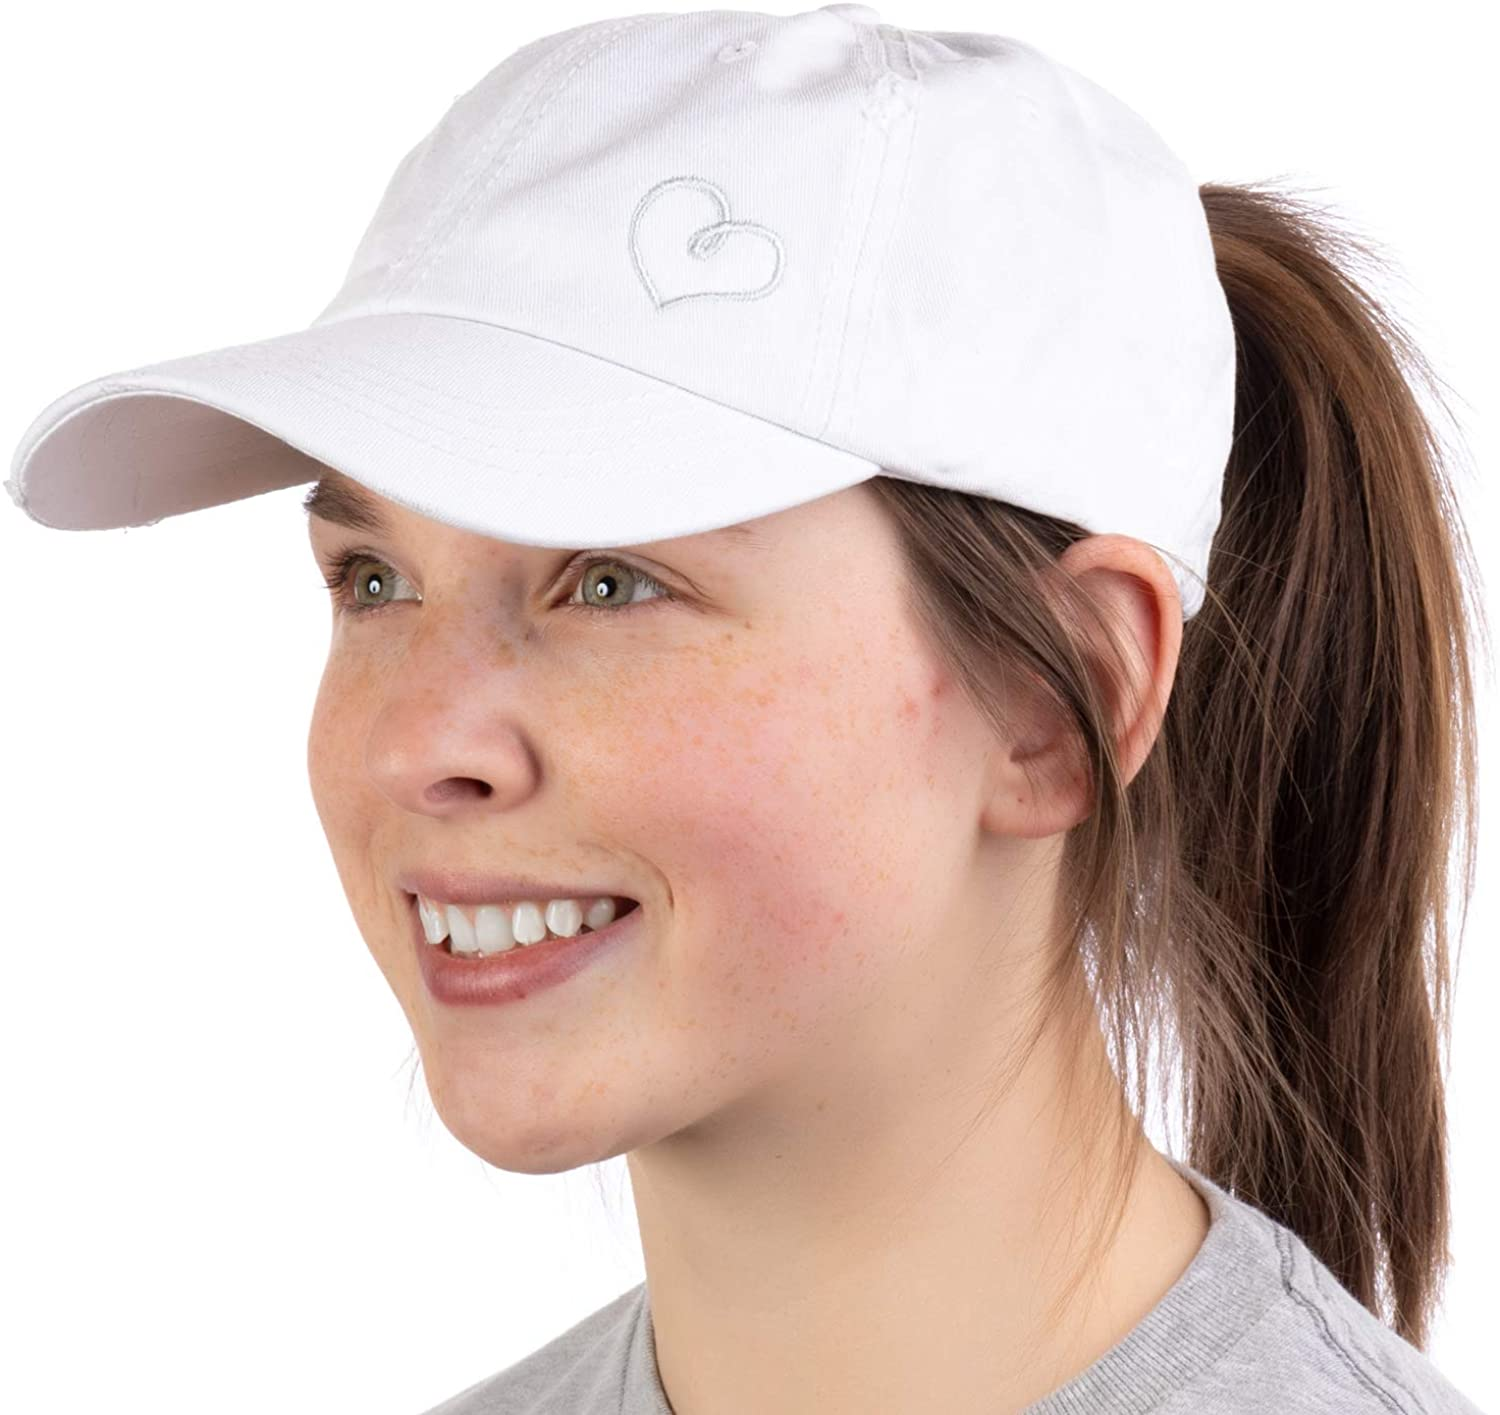 Heart Stitch | Ponytail Dad Hat Boating Lake Beach Pool Cute Pony Tail Low Cap